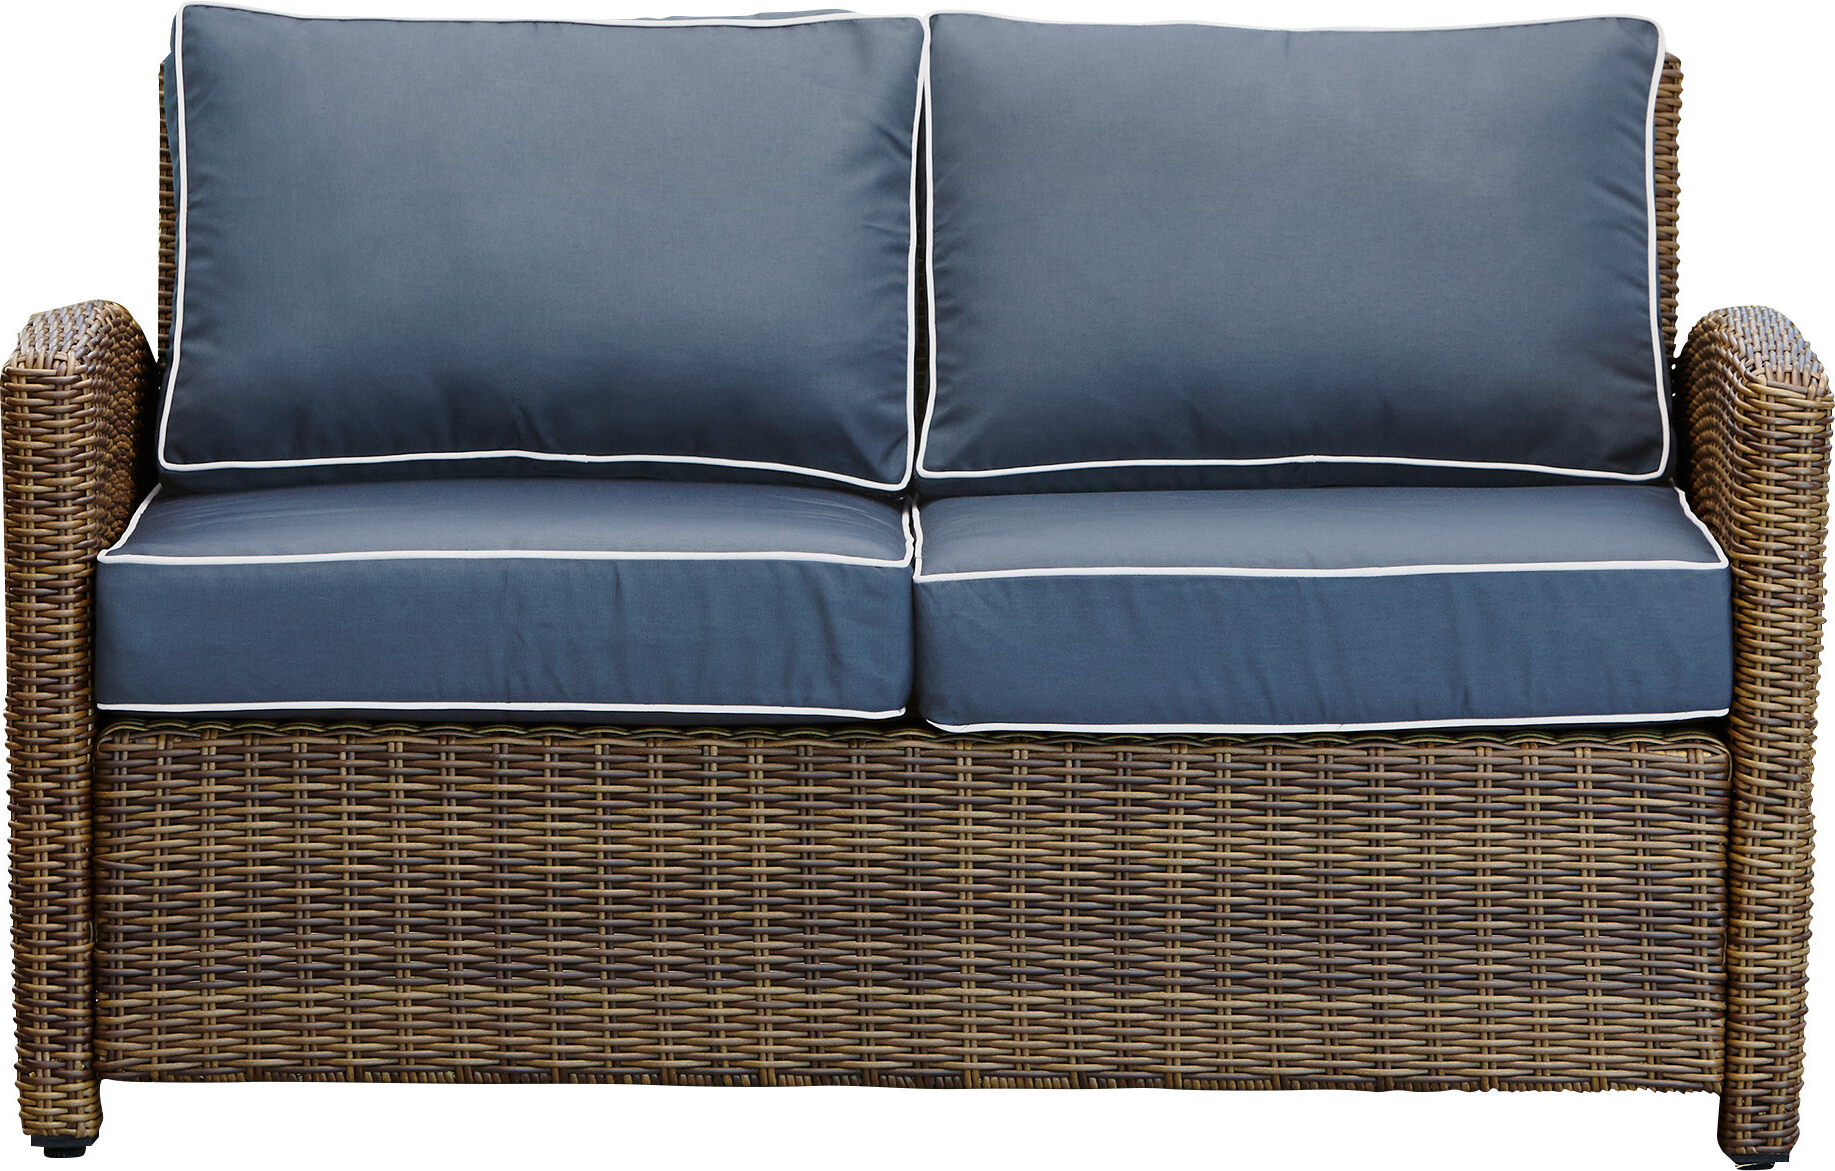 Lawson Wicker Loveseat With Cushions Pertaining To Most Popular Lawson Wicker Loveseats With Cushions (View 2 of 25)